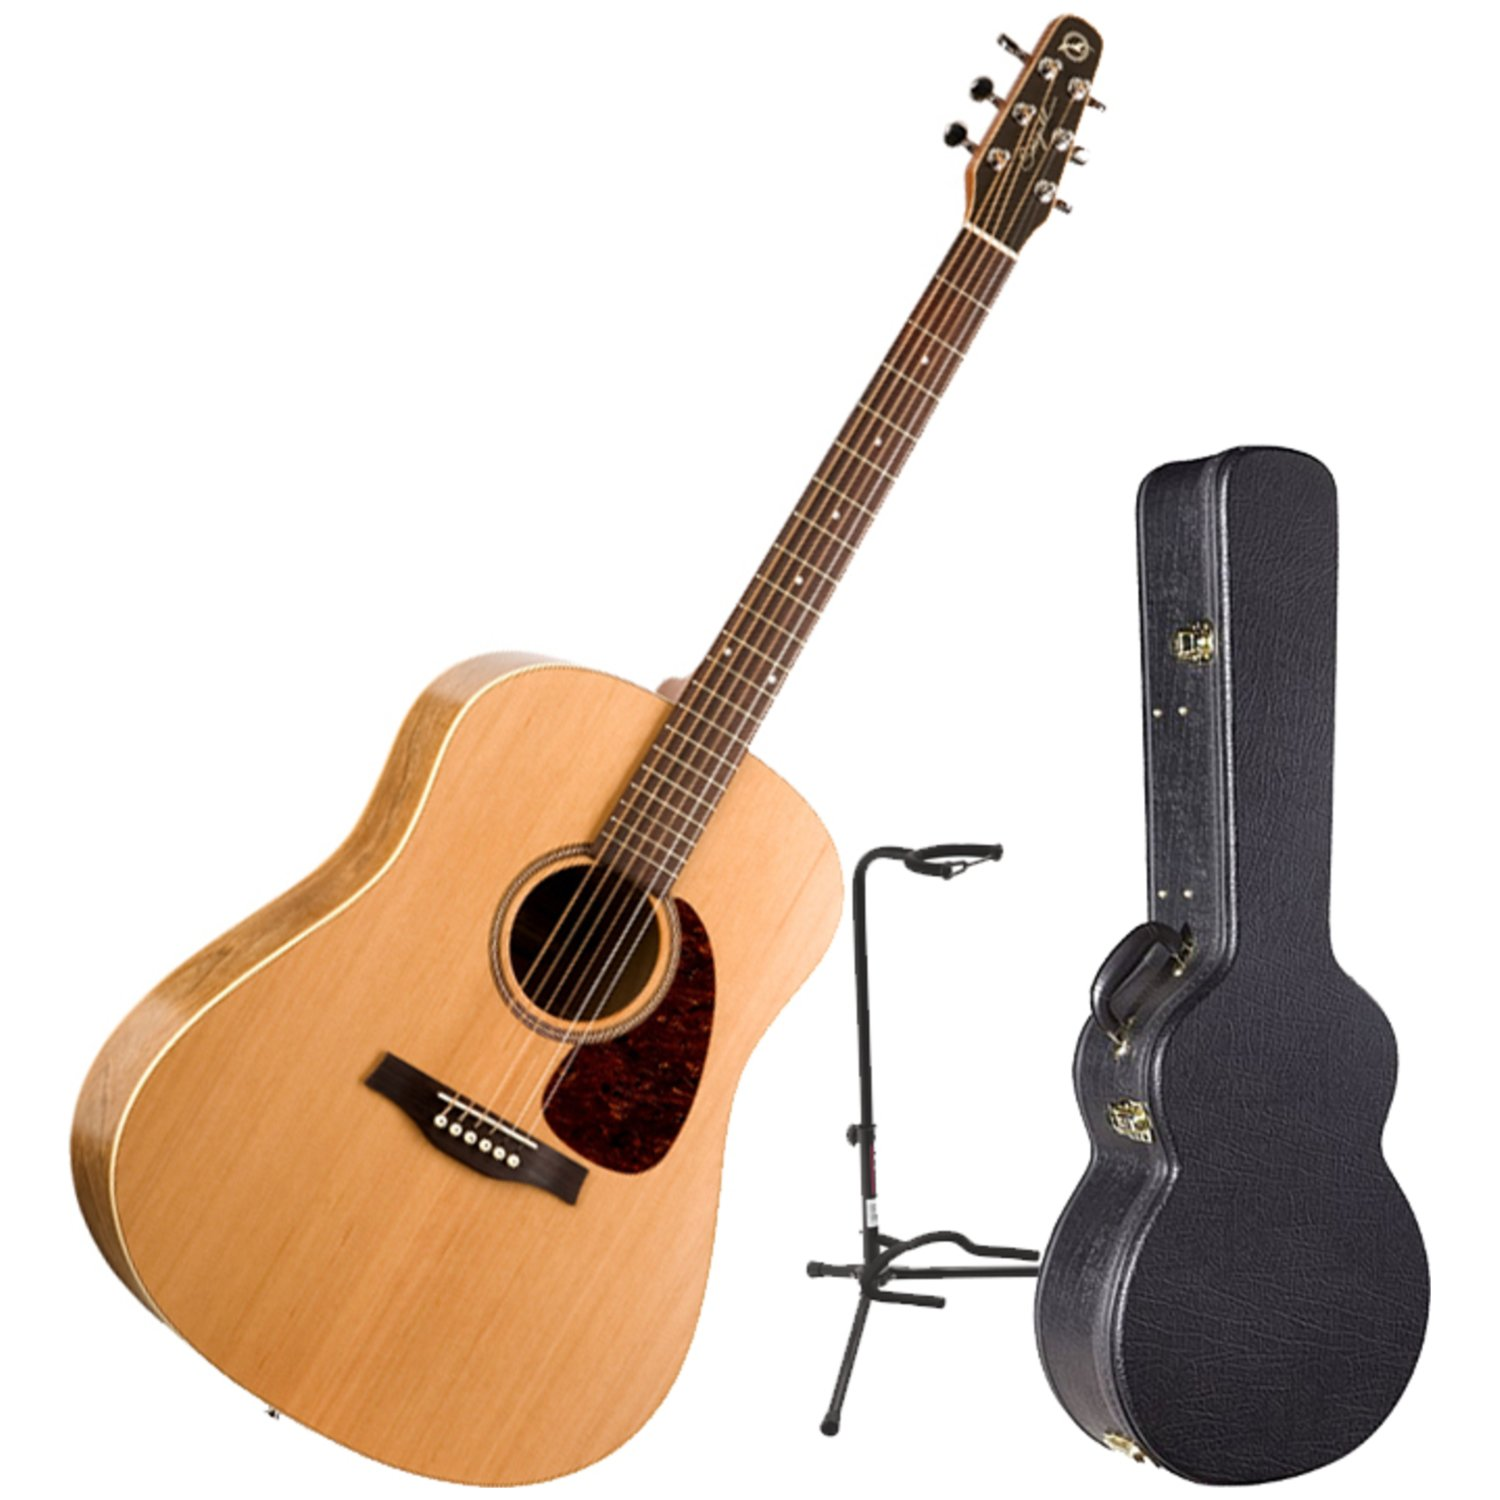 seagull s6 slim acoustic guitar w acoustic case and